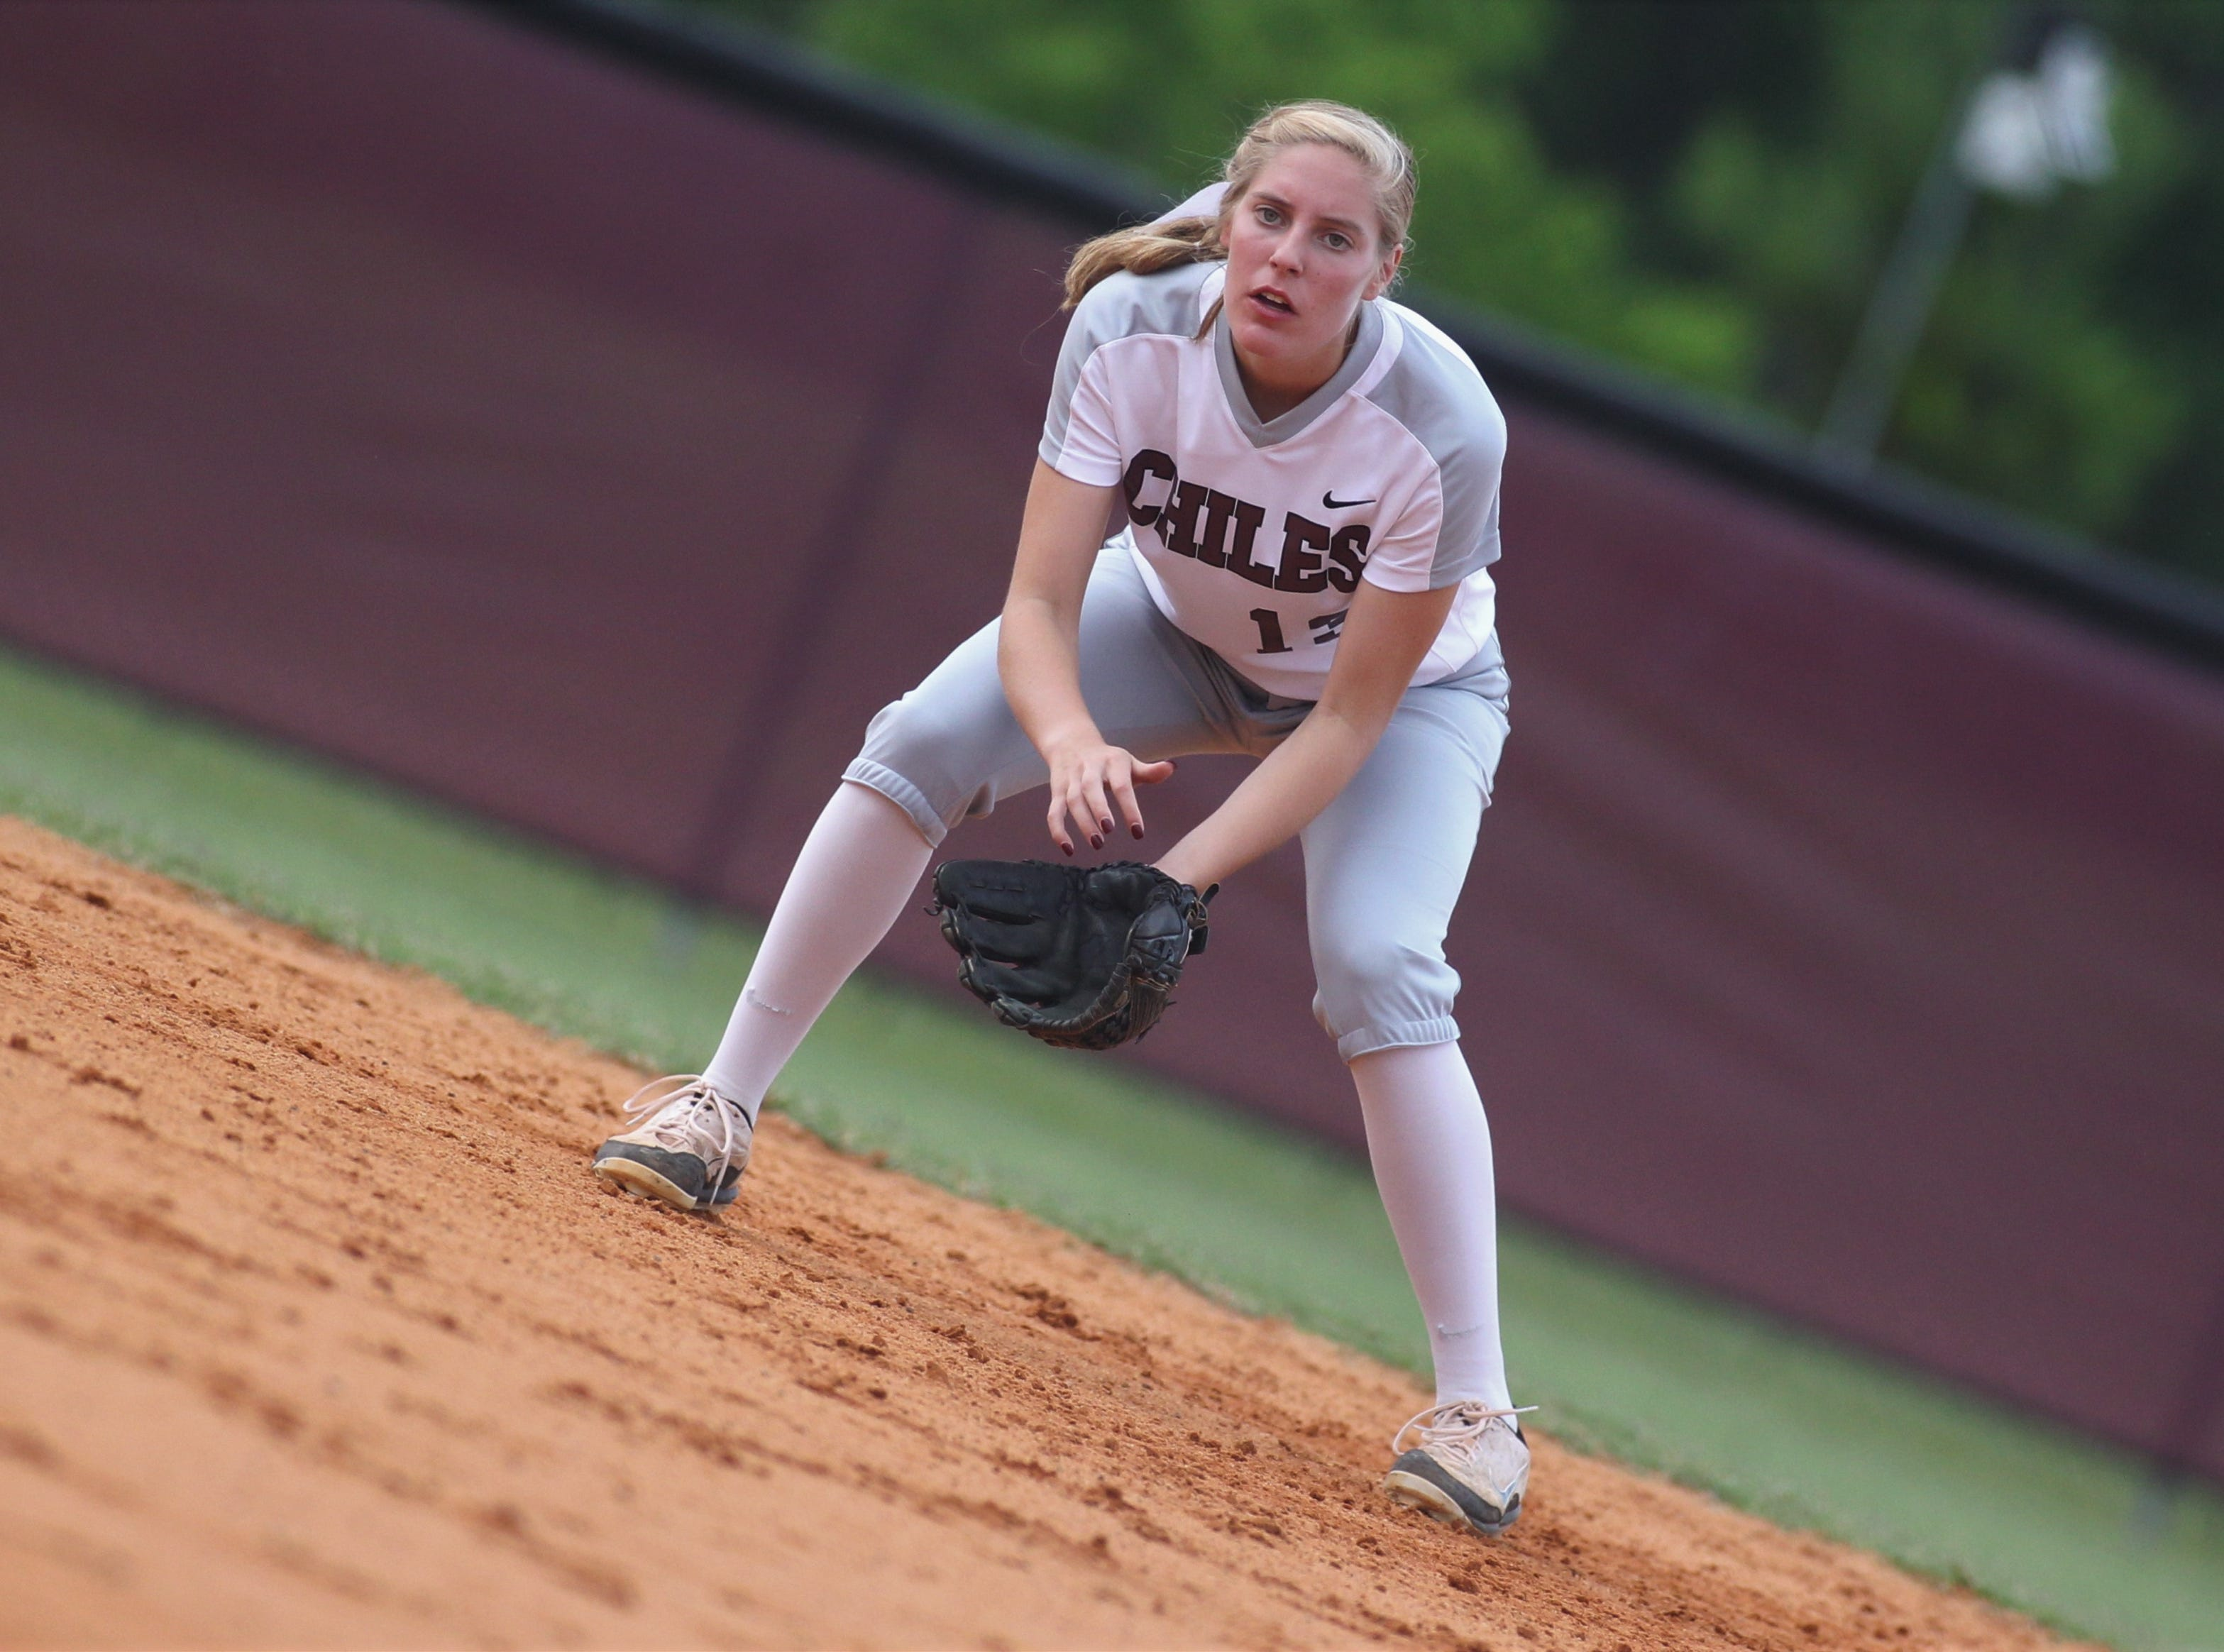 Chiles senior Kelsey Mead prepares defensively at second base as the Timberwolves beat Atlantic Coast 6-4 during a Region 1-8A quarterfinal softball game on Wednesday, May 8, 2019.